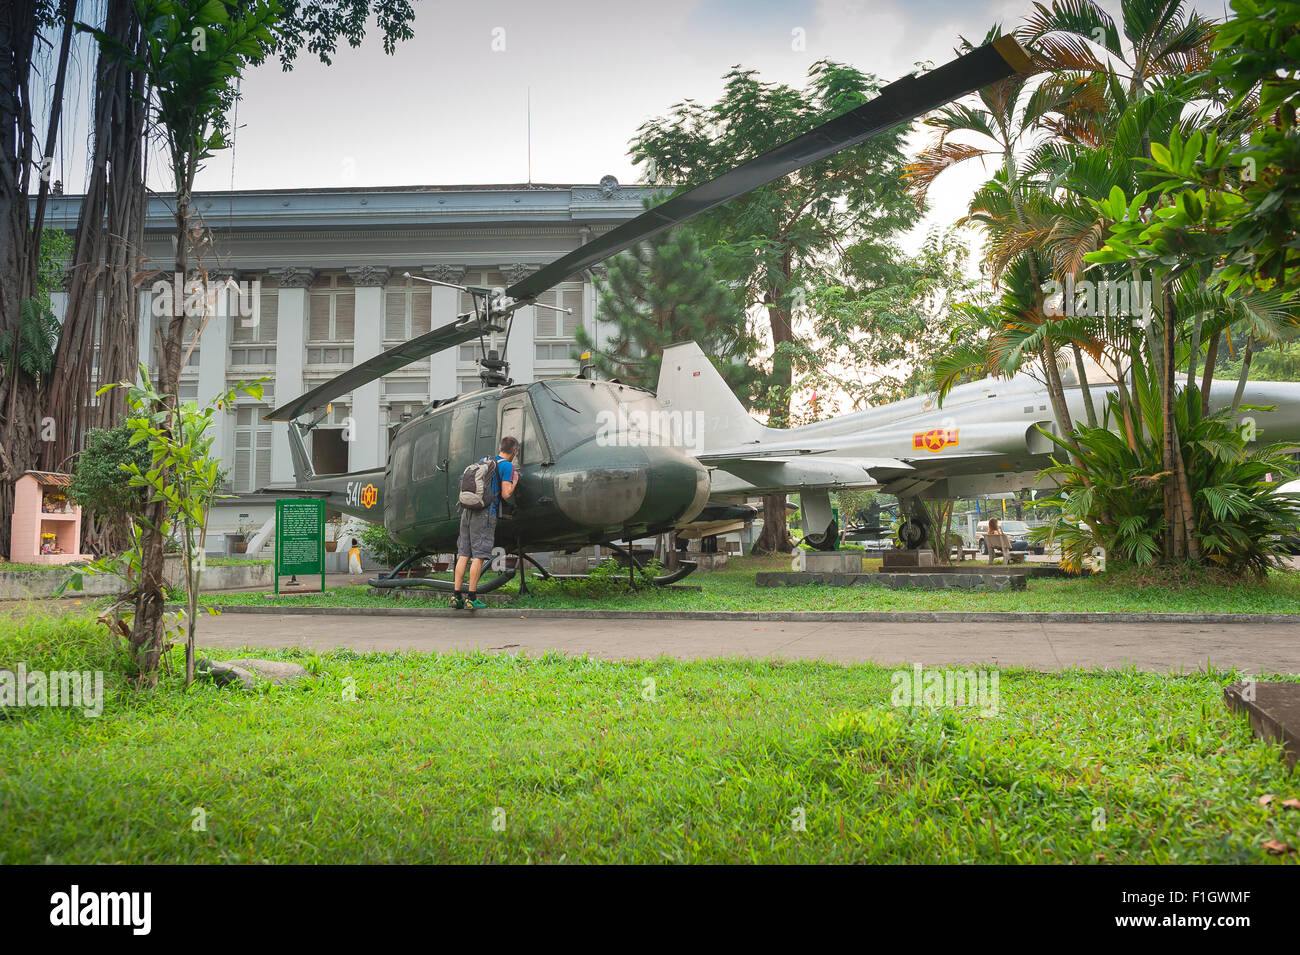 Tourist Vietnam, a curious visitor to the Ho Chi Minh City Museum in Saigon inspects the cockpit of a US Bell Huey - Stock Image